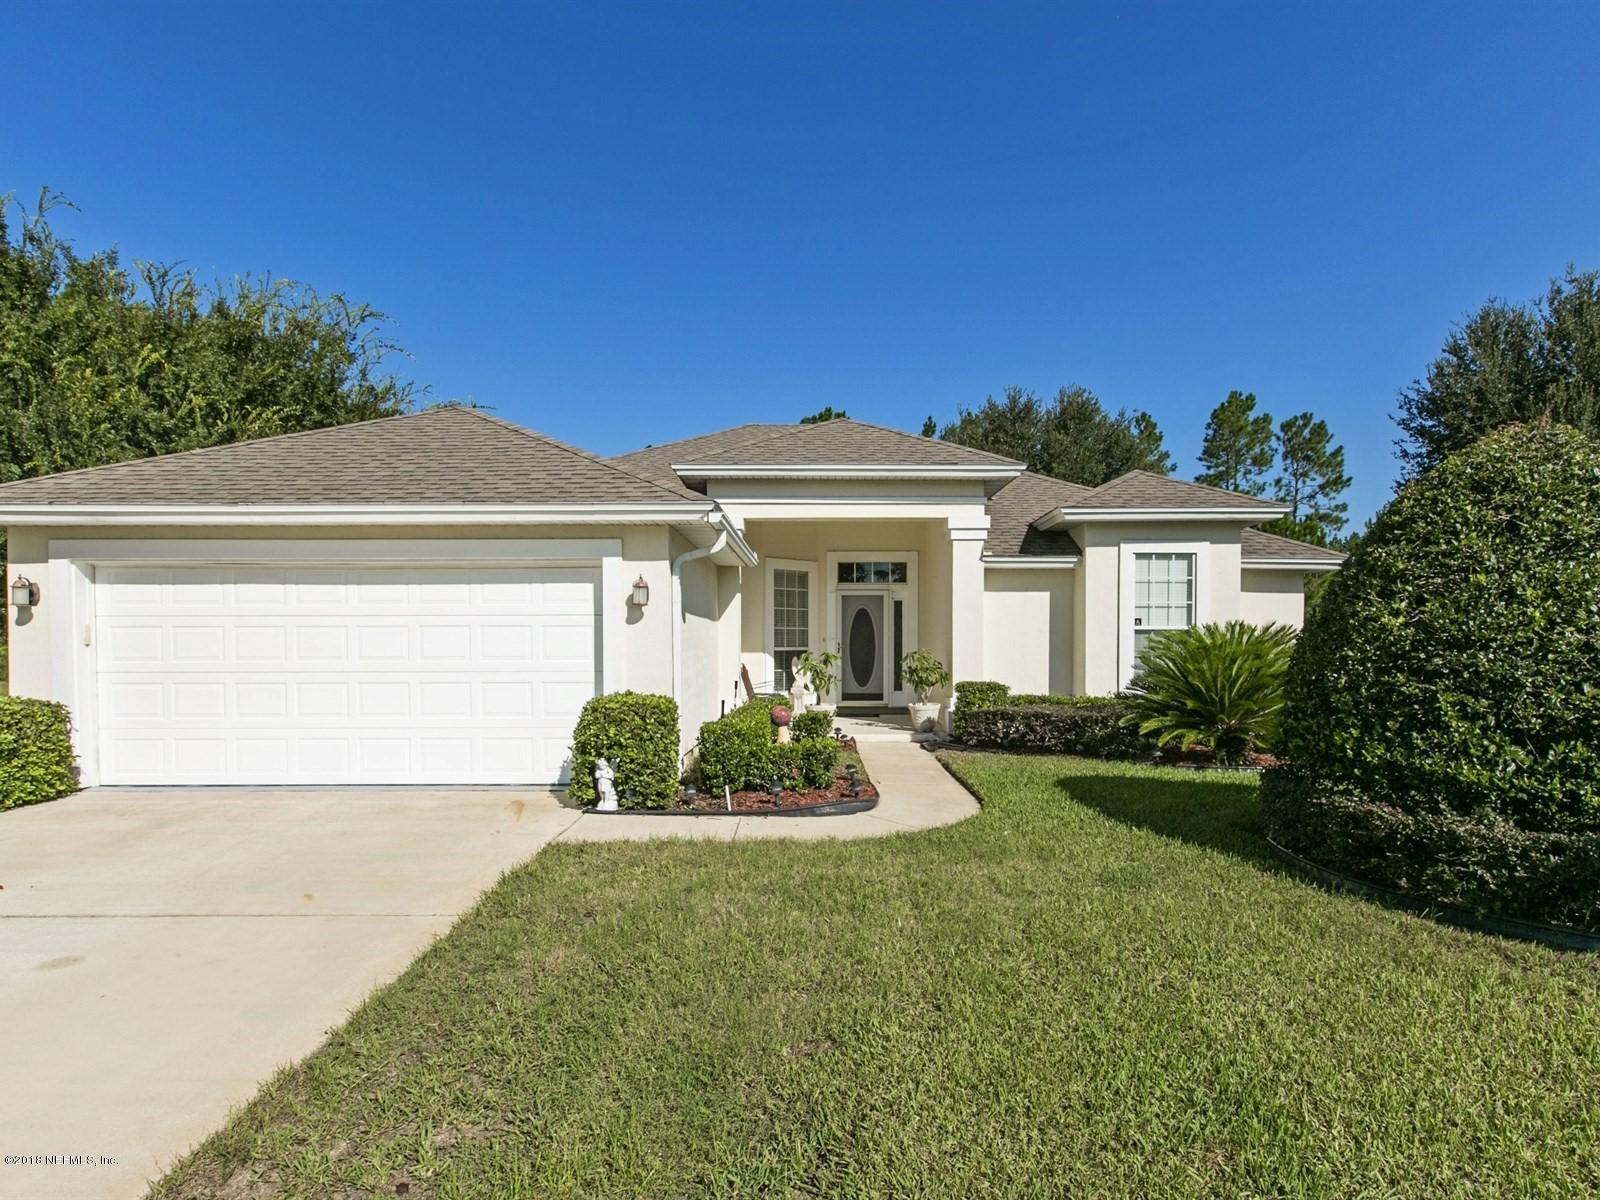 4581 COMANCHE TRAIL, ST JOHNS, FLORIDA 32259, 3 Bedrooms Bedrooms, ,2 BathroomsBathrooms,Residential - single family,For sale,COMANCHE TRAIL,957332